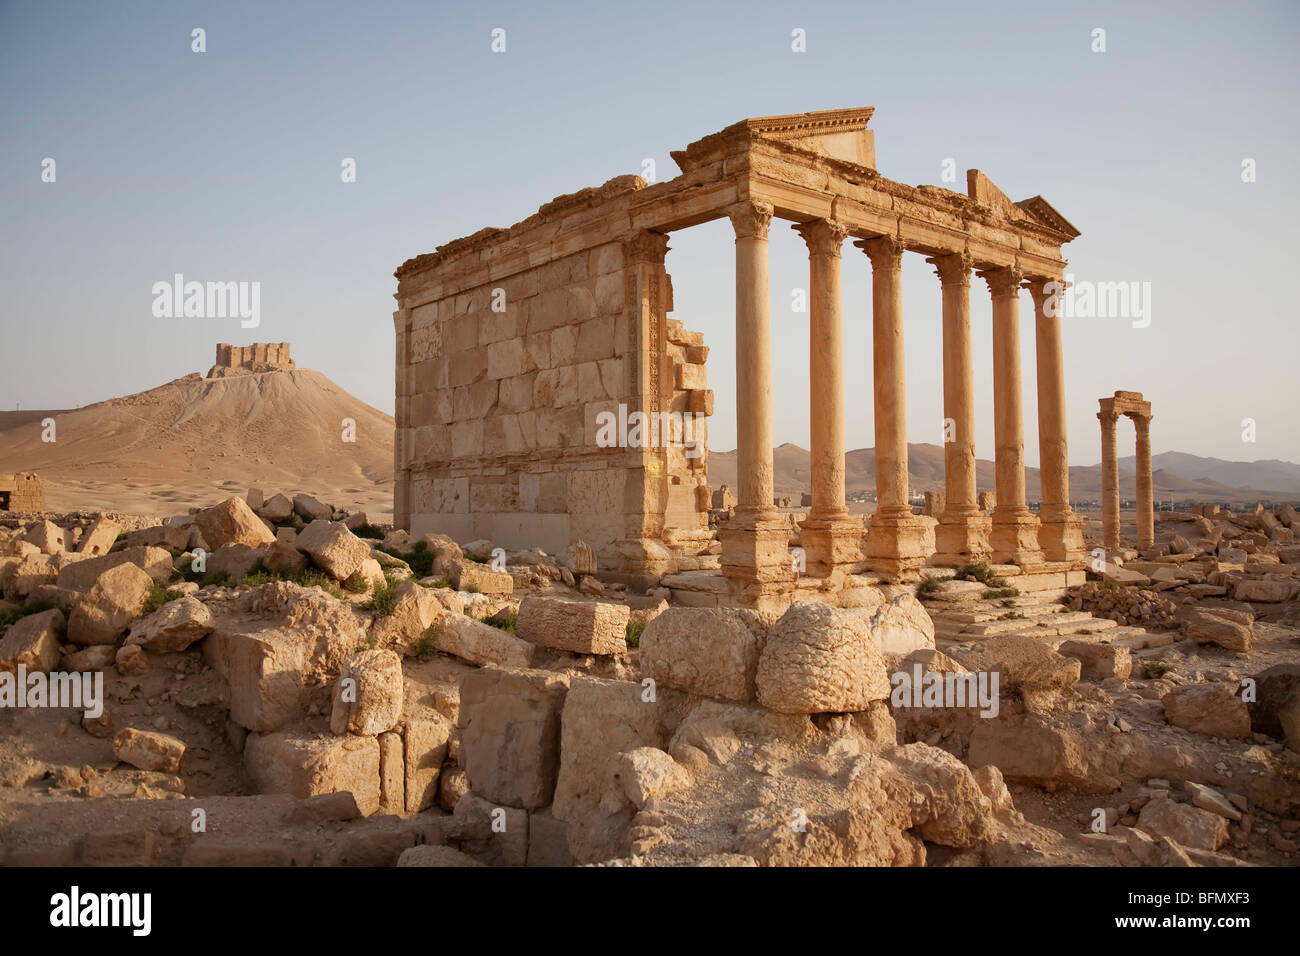 Syria, Palmyra. The treasury. Fallen columns litter the ground across the site of Queen Zenobia's ancient city - Stock Image